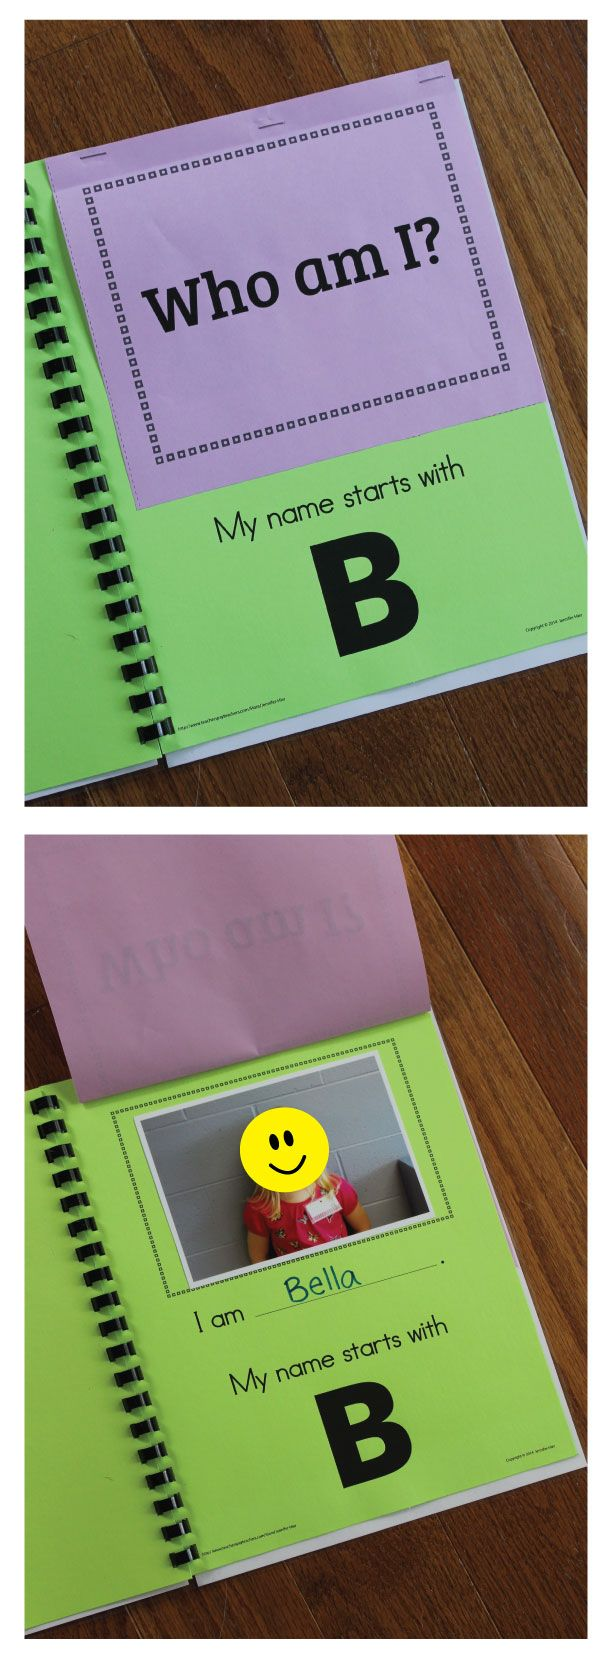 Make your own class lift-the-flap book! Kids LOVE a lift-the-flap book with their own picture in it.